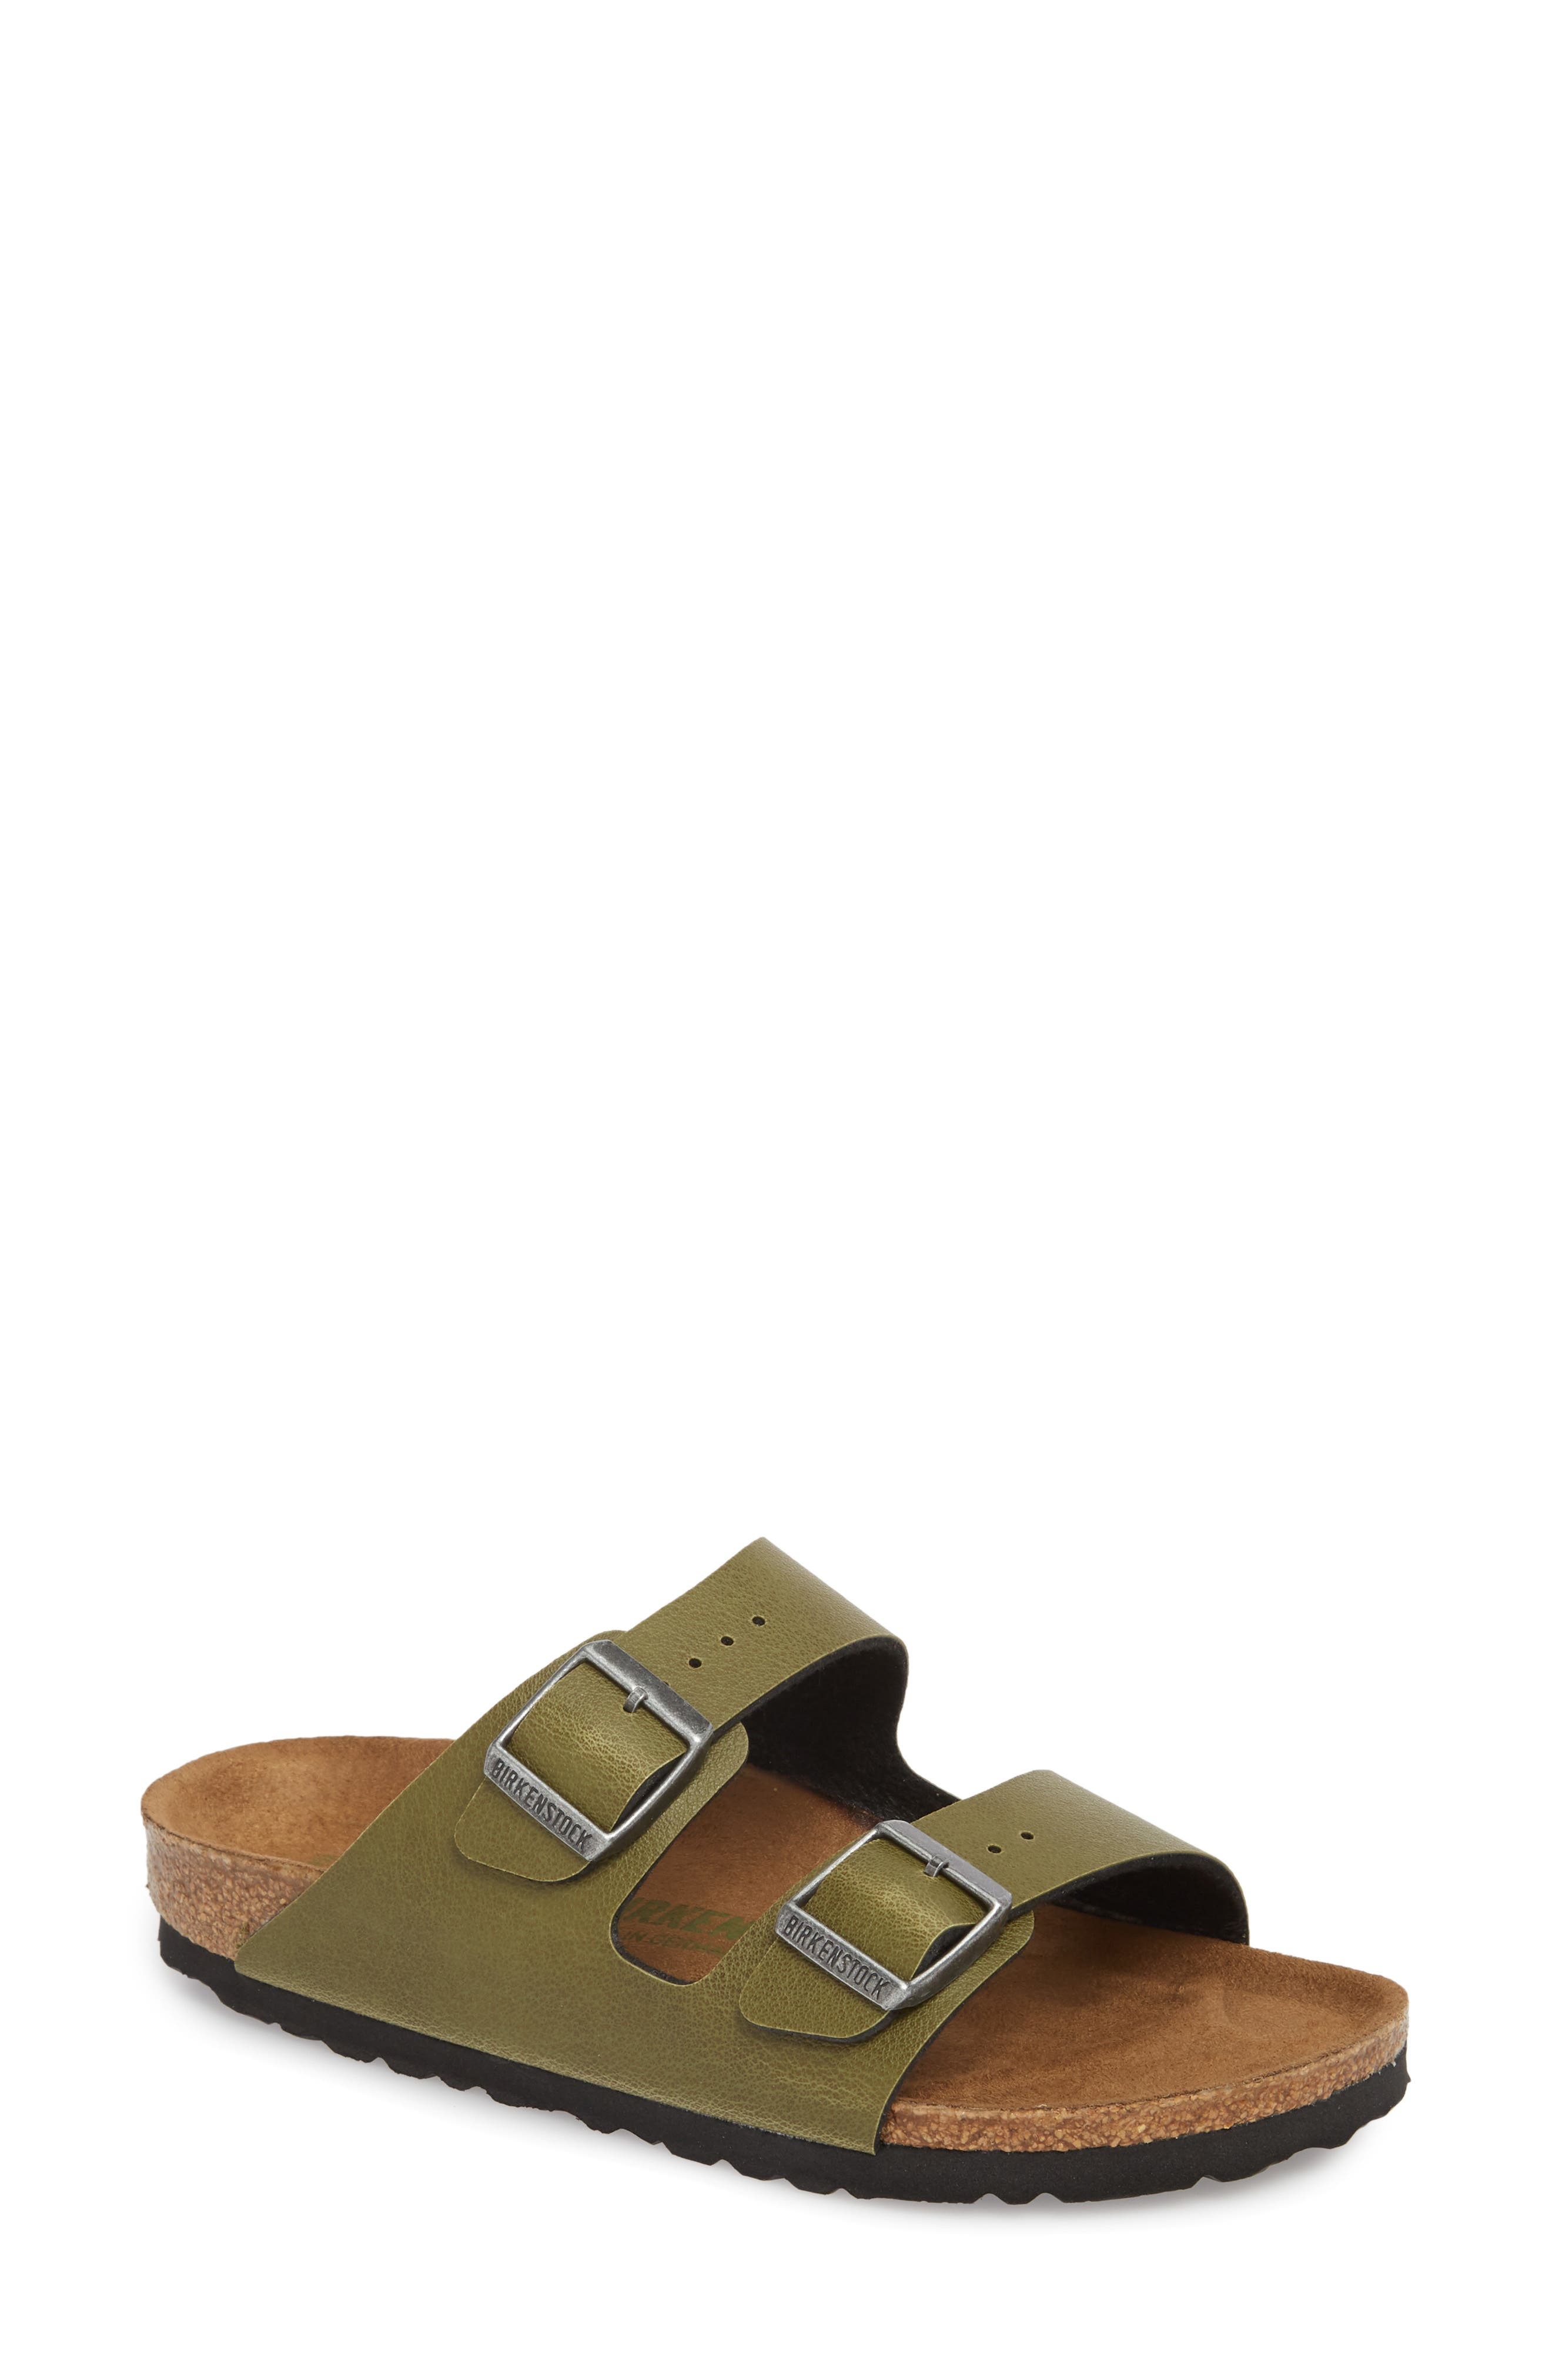 Alternate Image 1 Selected - Birkenstock Arizona Birko-Flor™ Slide Sandal (Women)